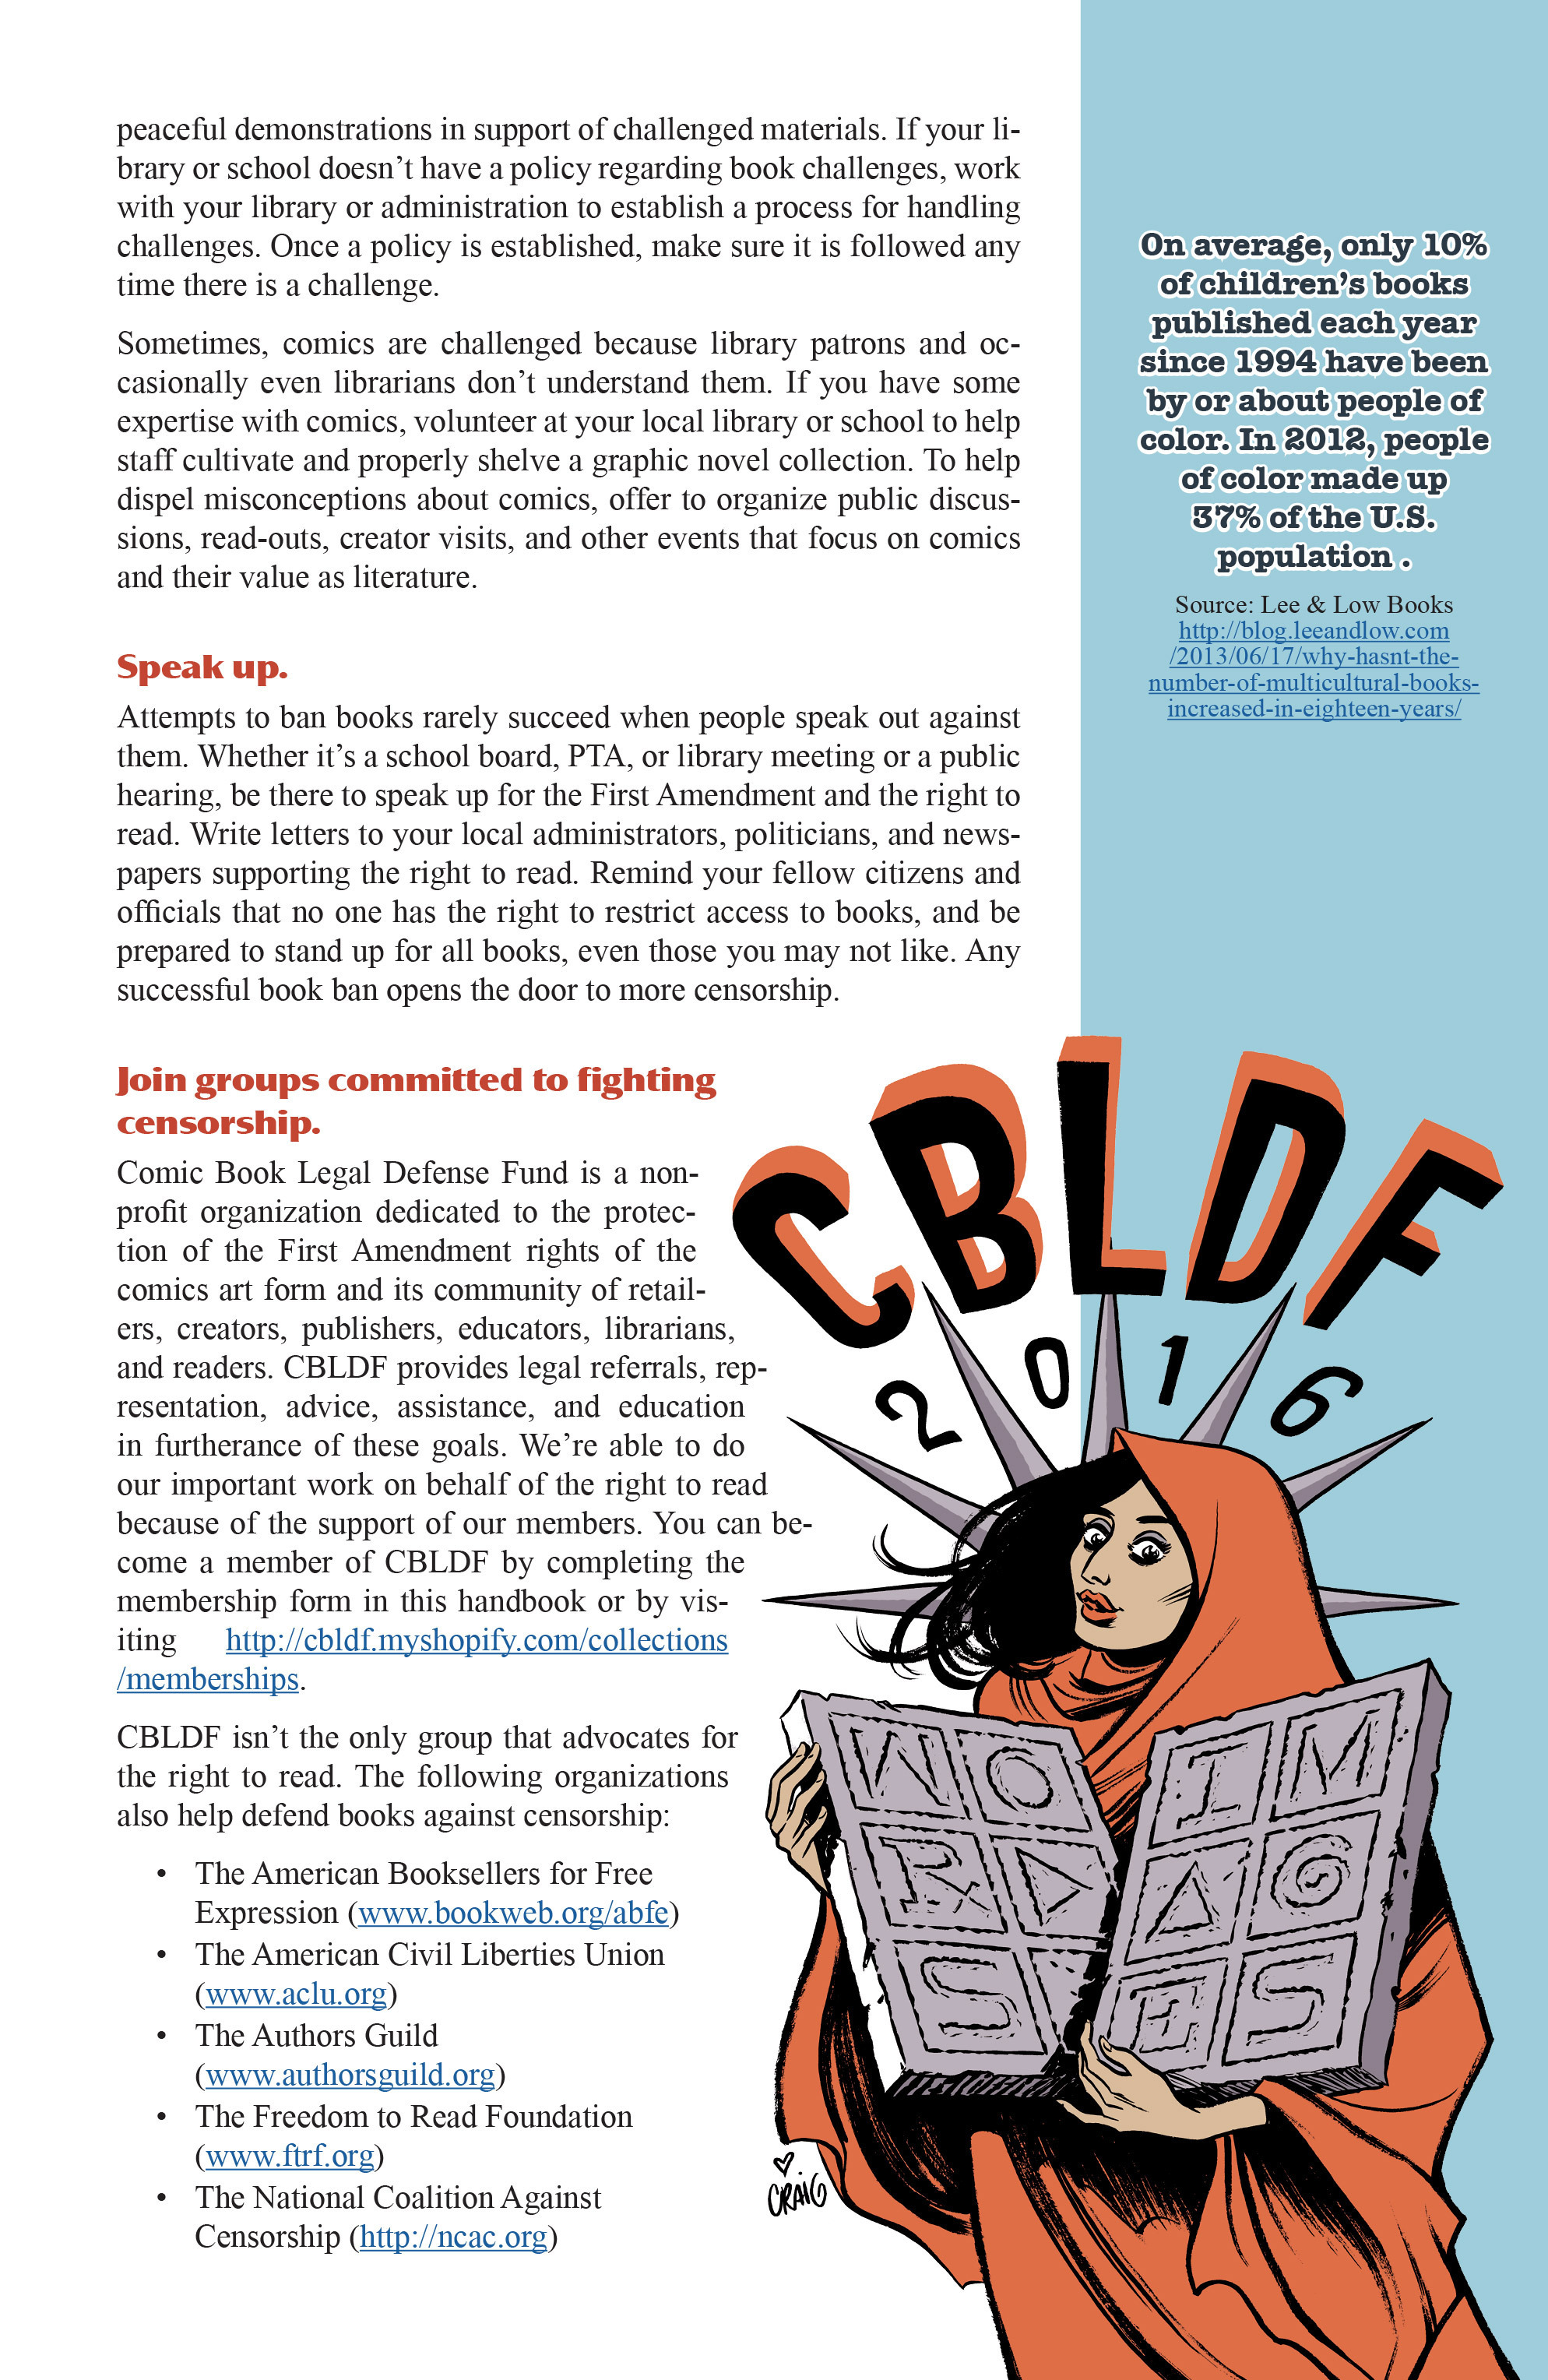 Read online CBLDF Banned Books Week Handbook 2016 comic -  Issue # Full - 11